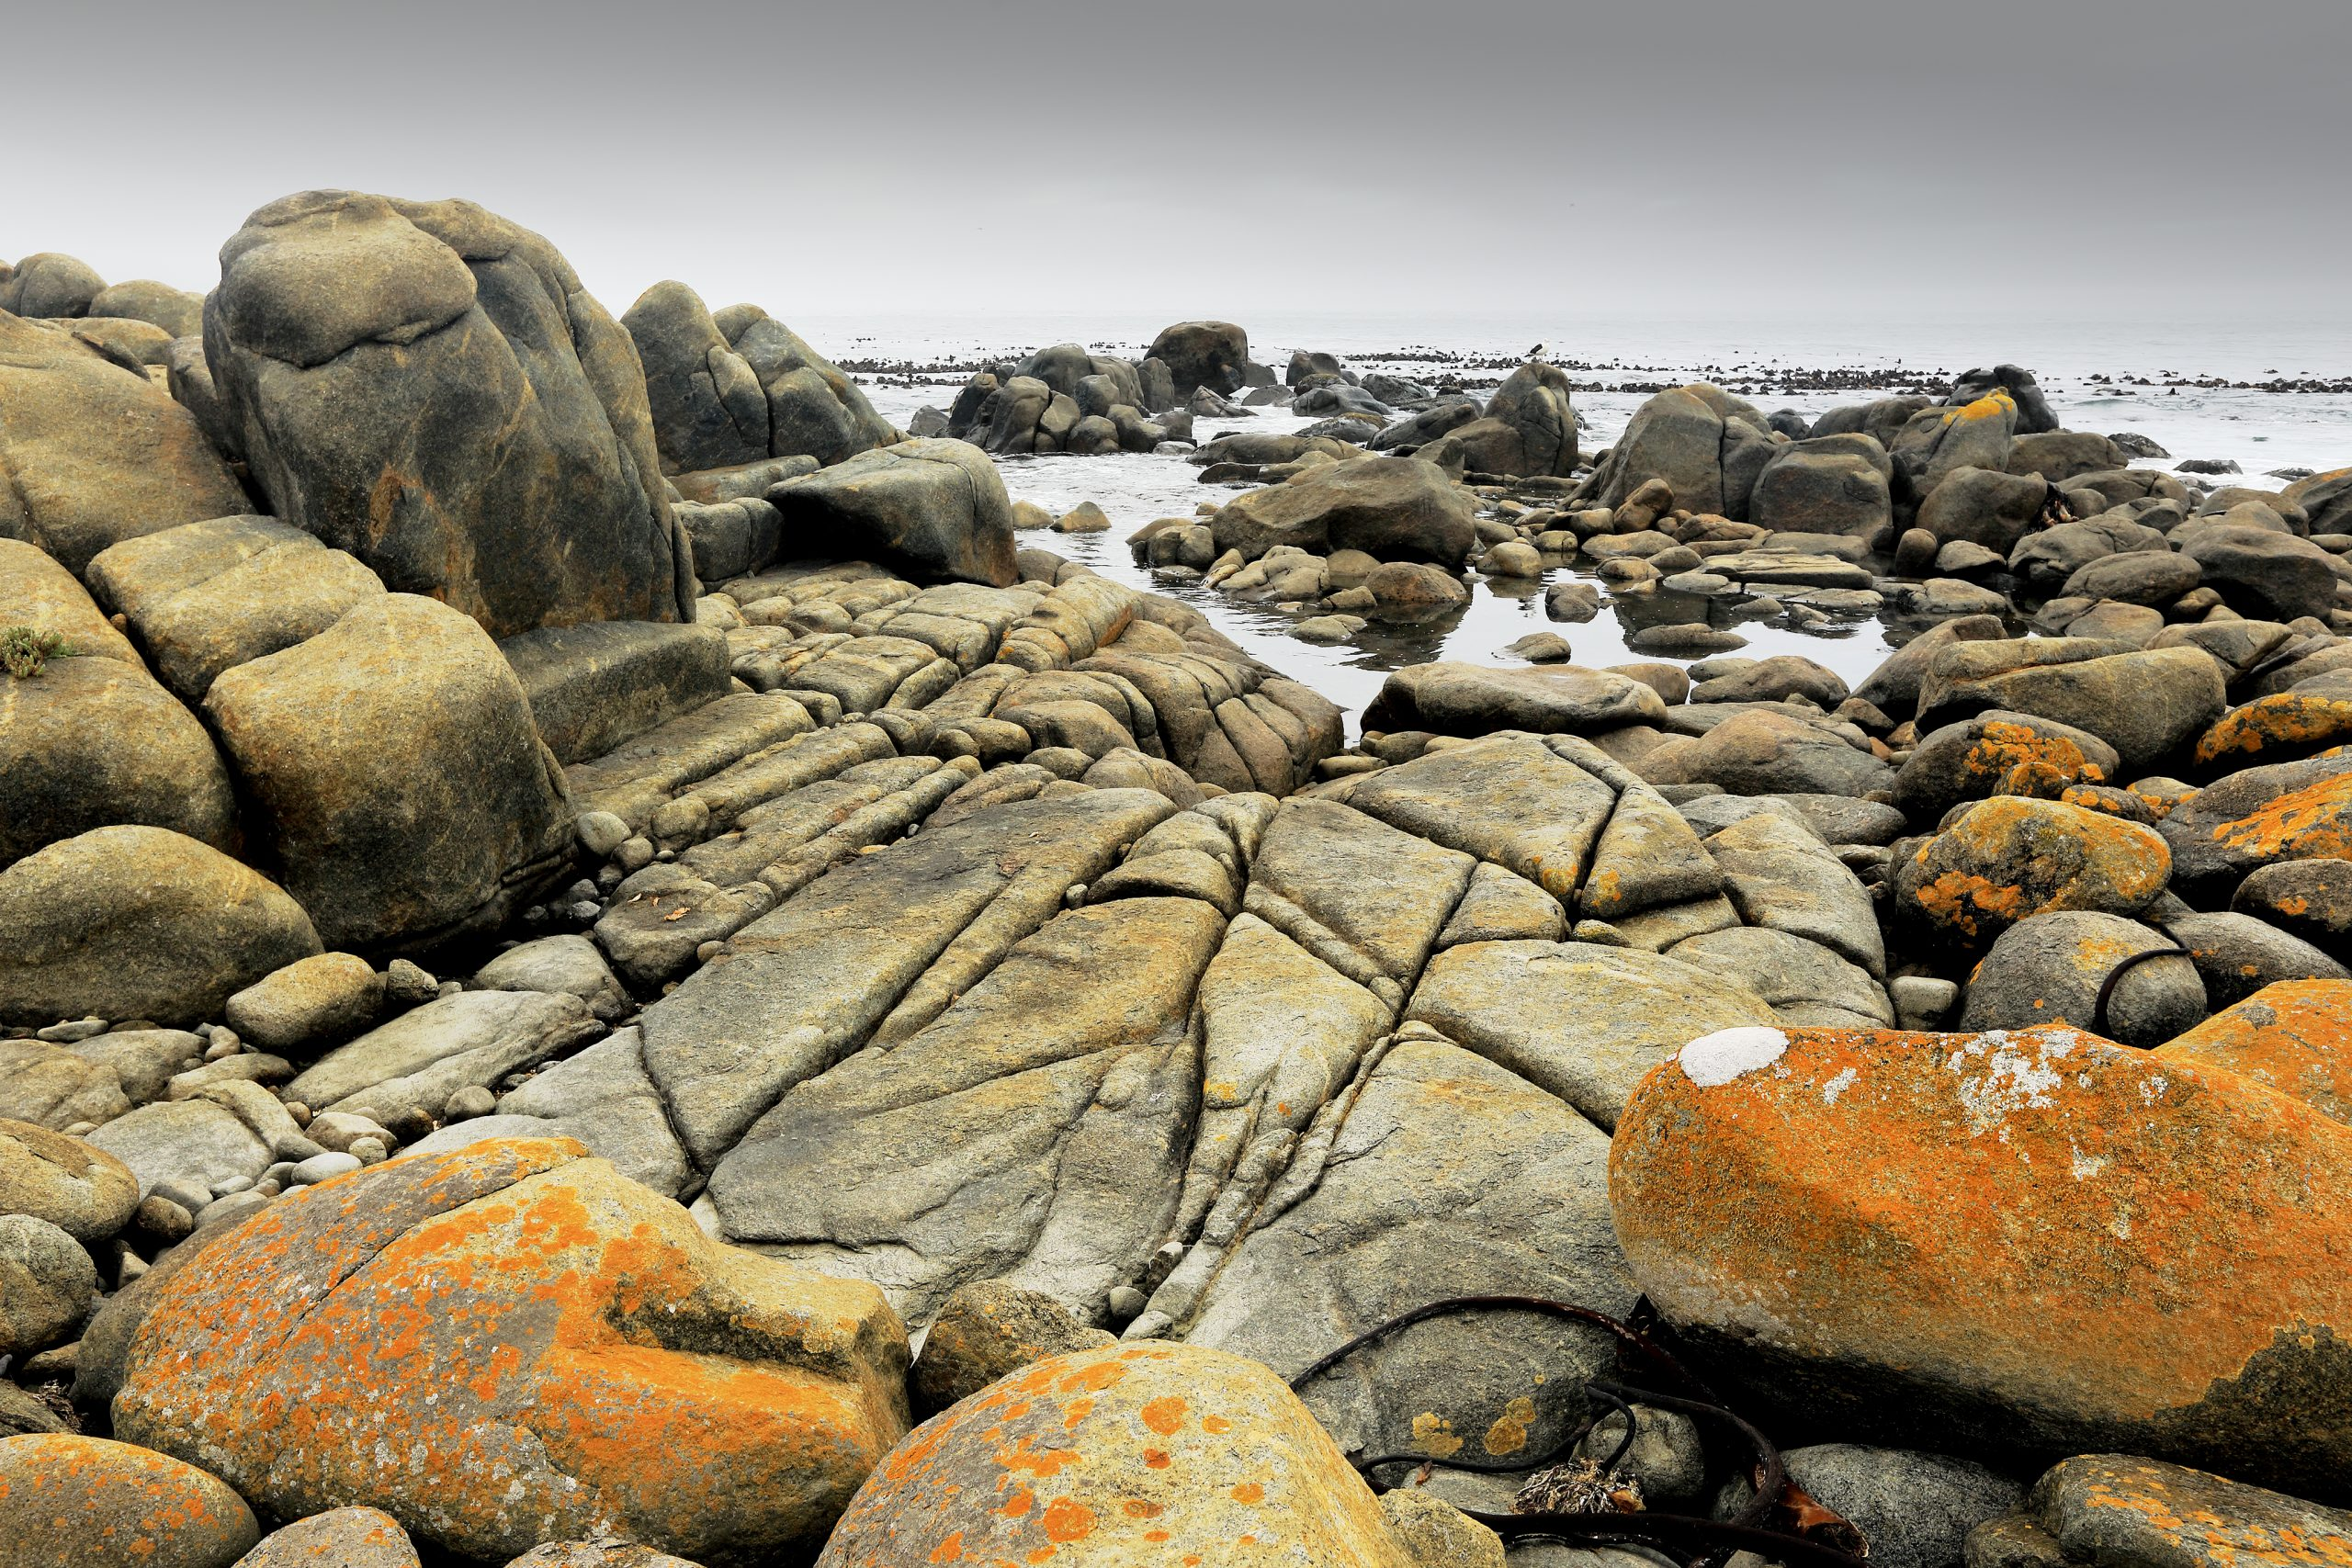 Textured and colourful granite rocks at the shore